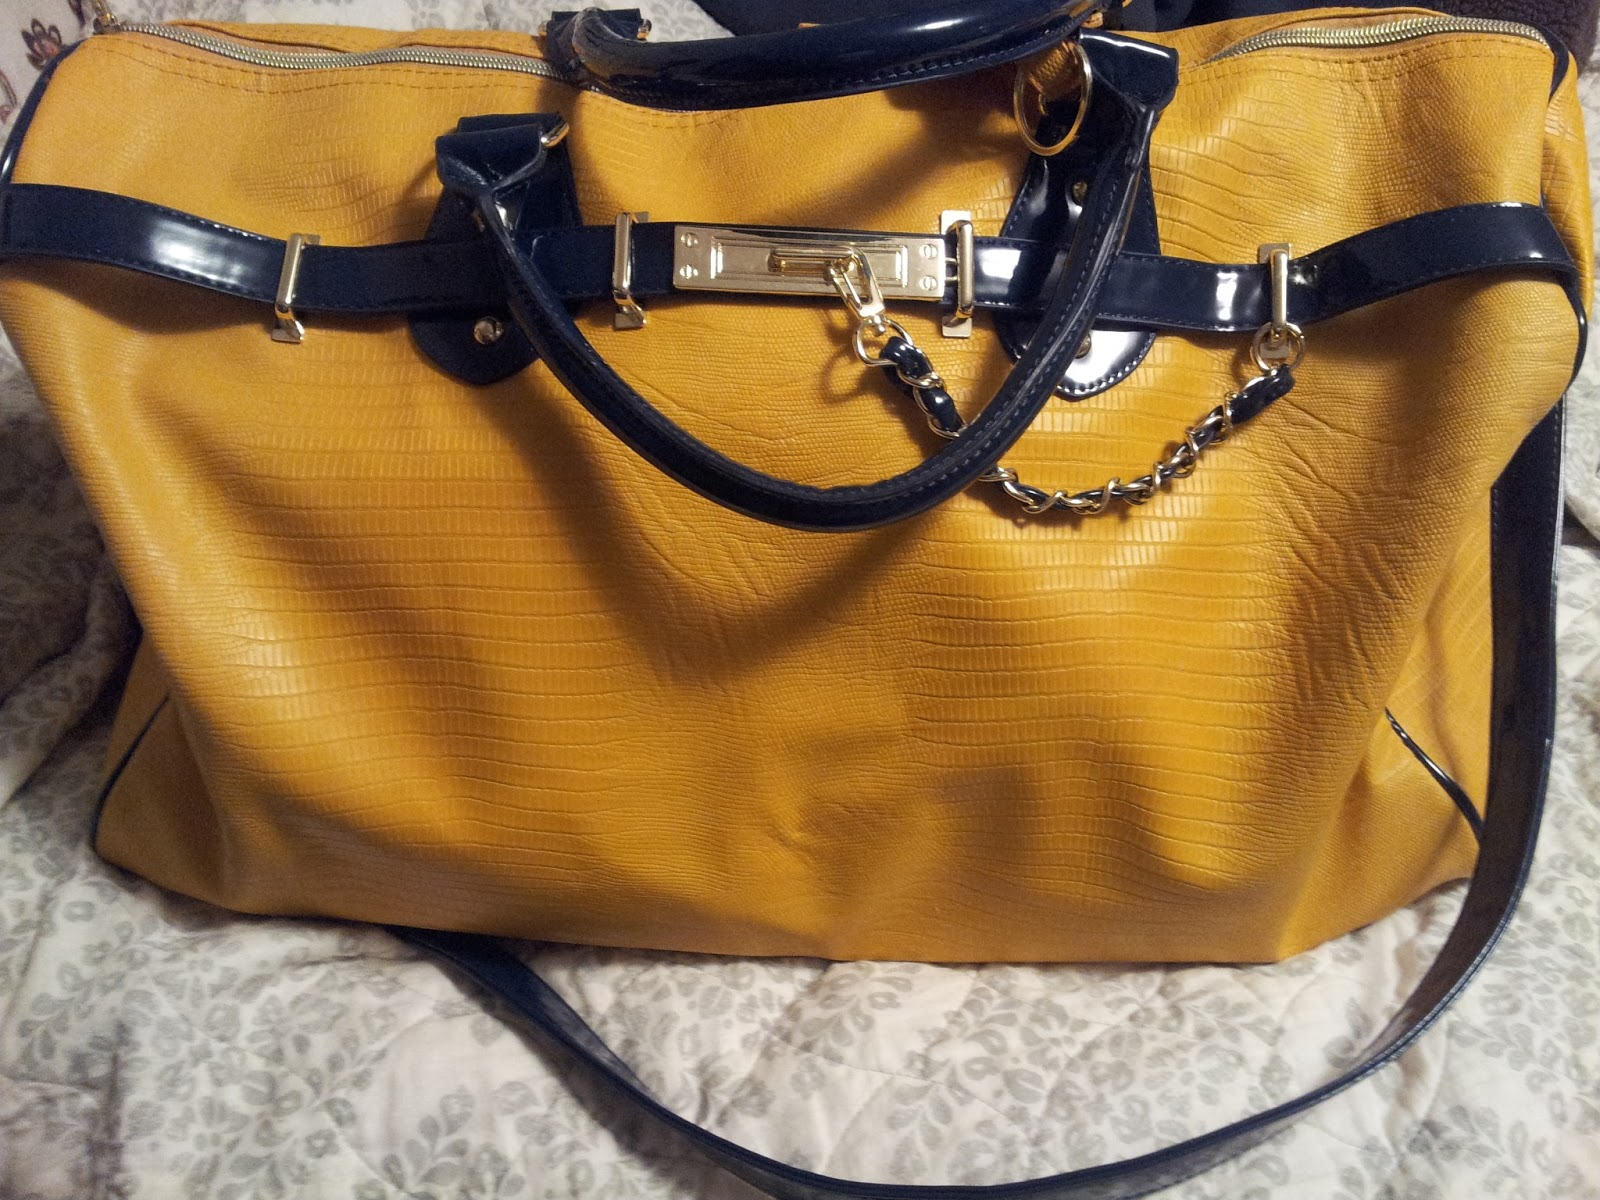 Over The Last Few Years So While I Was At Tj Ma Other Day Picked Up An Adorable Weekender Bag By Steve Madden And M In Love With It